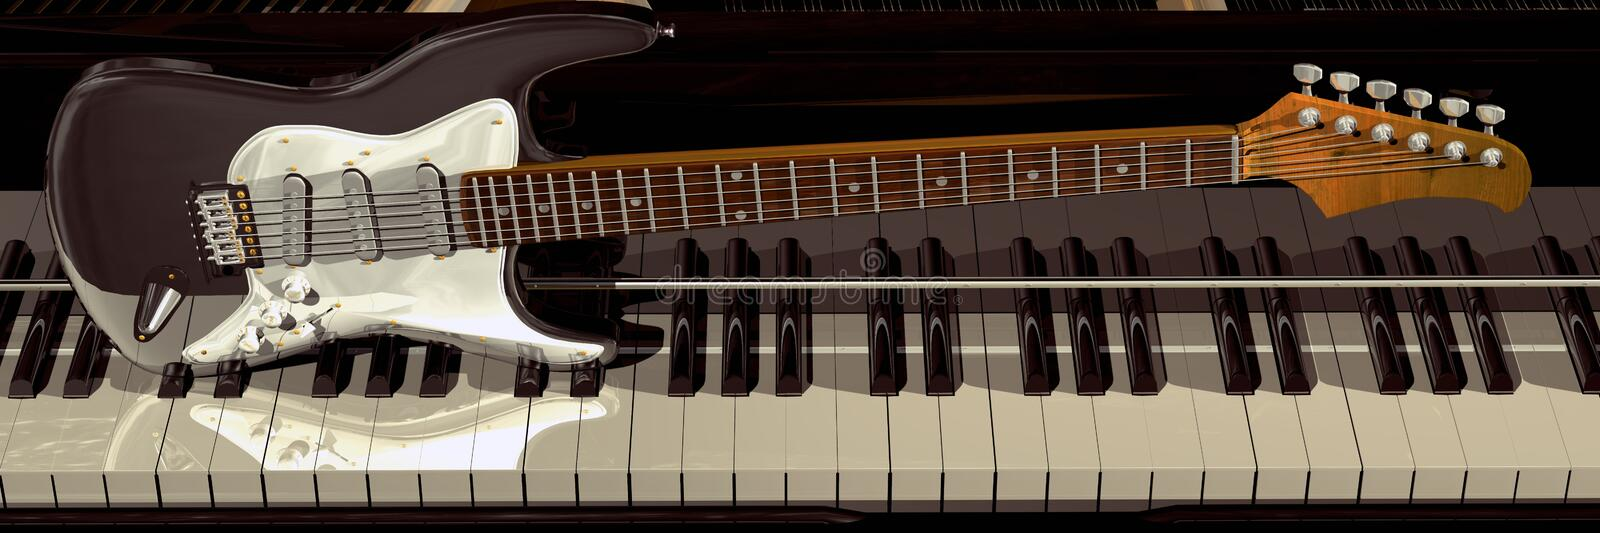 Piano et guitare photo stock